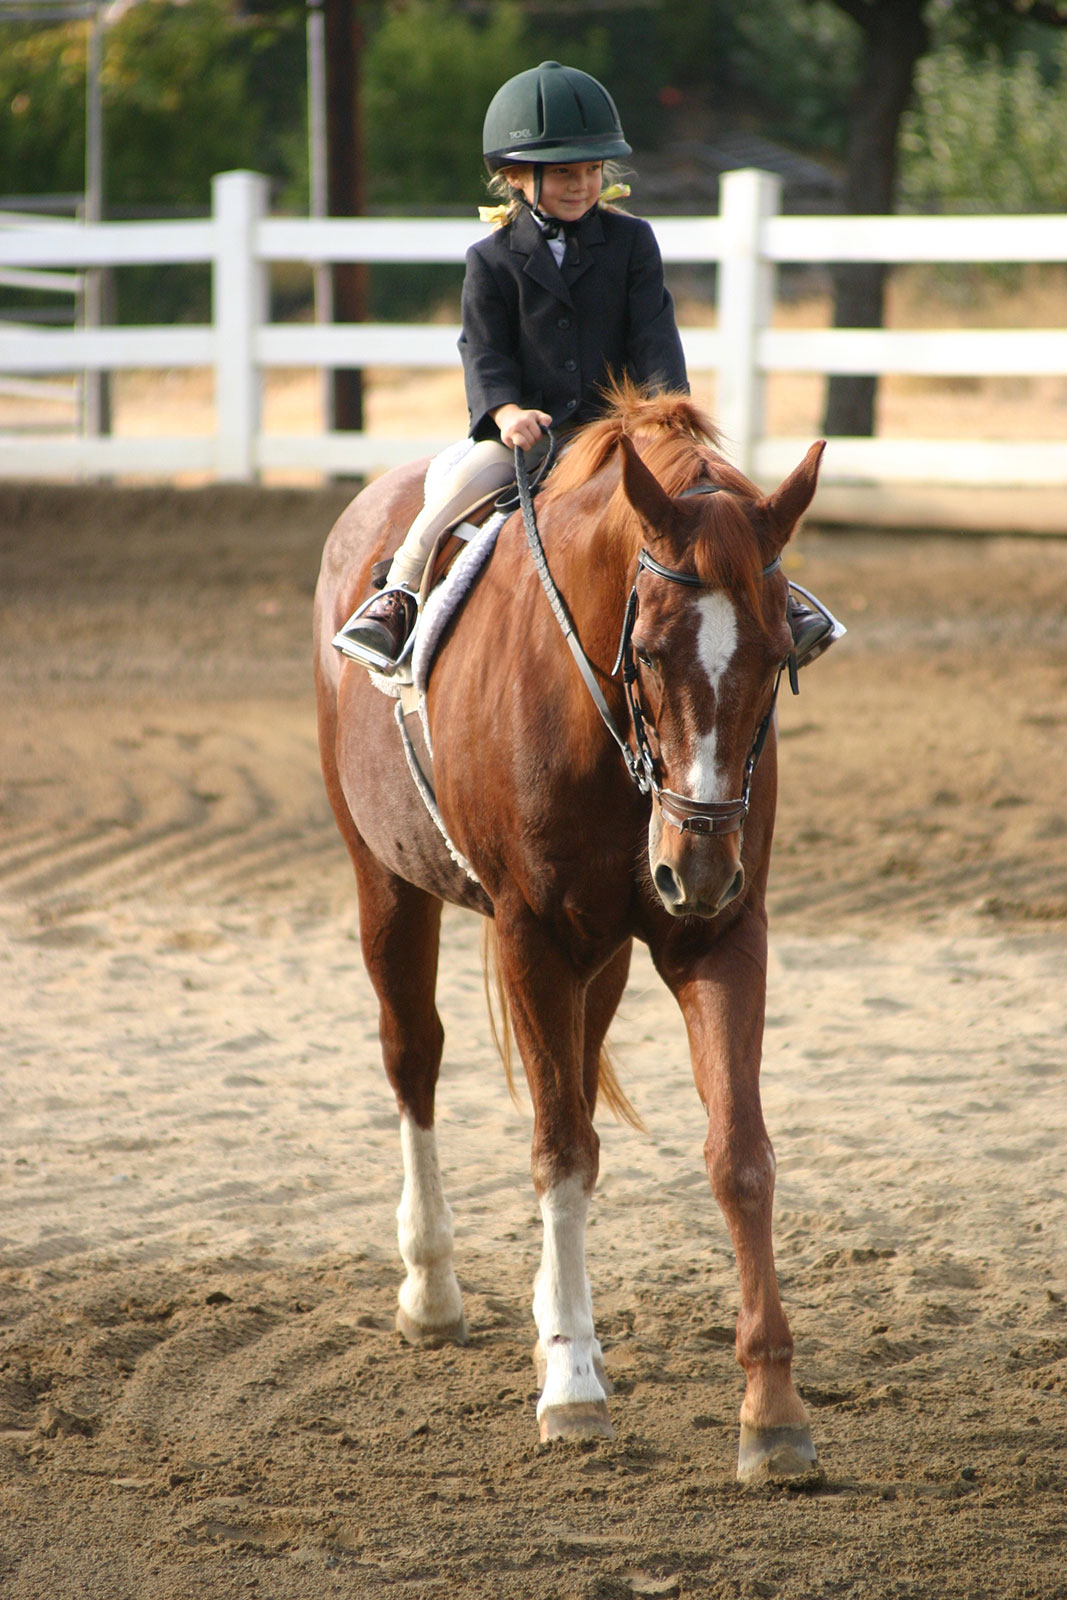 Horse riding lessons coupons